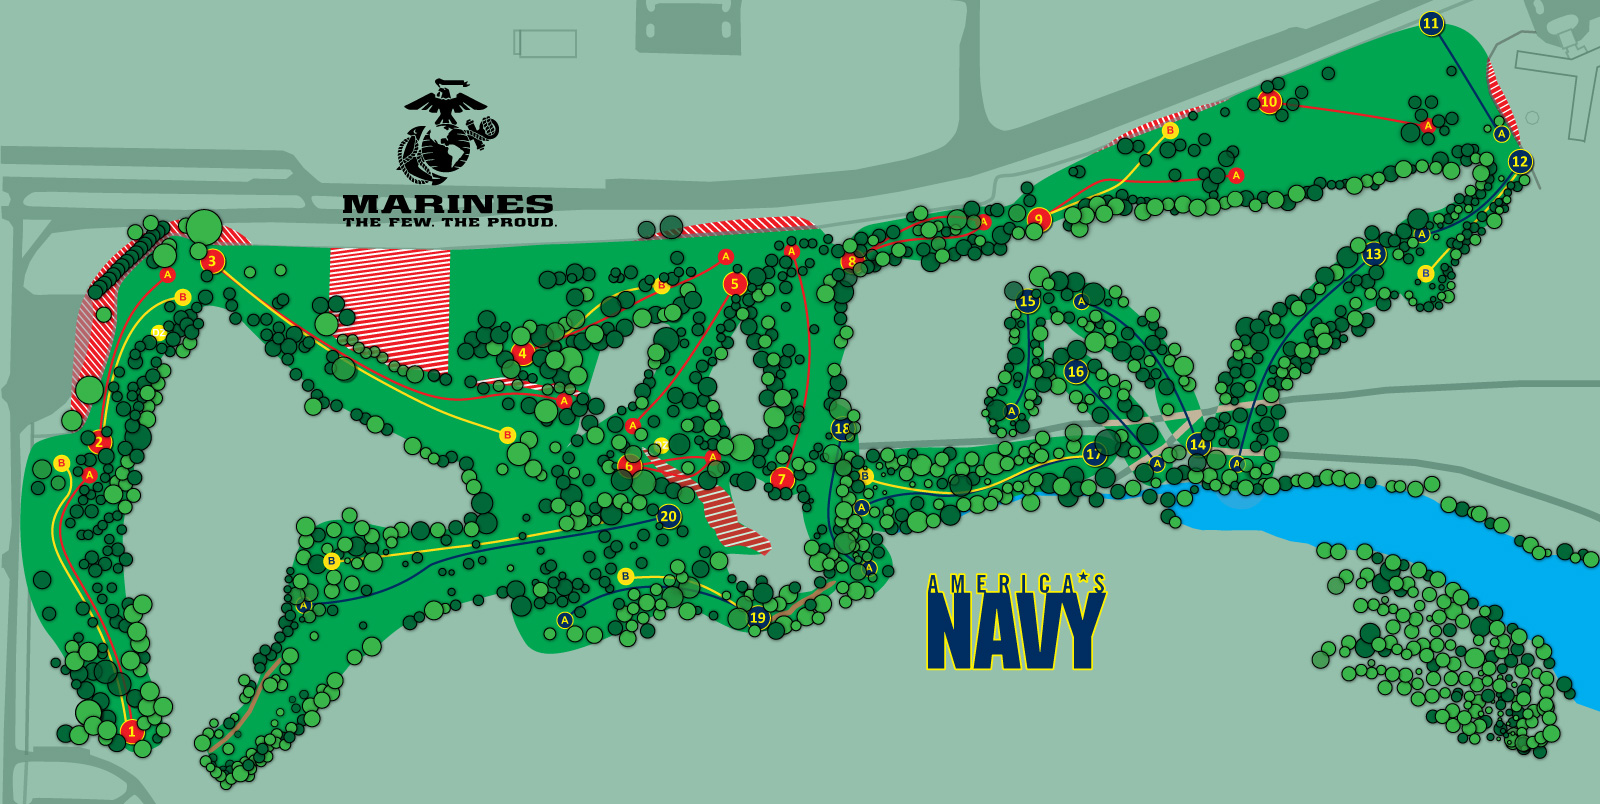 Fort-Gordon-Disc-Golf_Marine-Navy_long_map.jpg